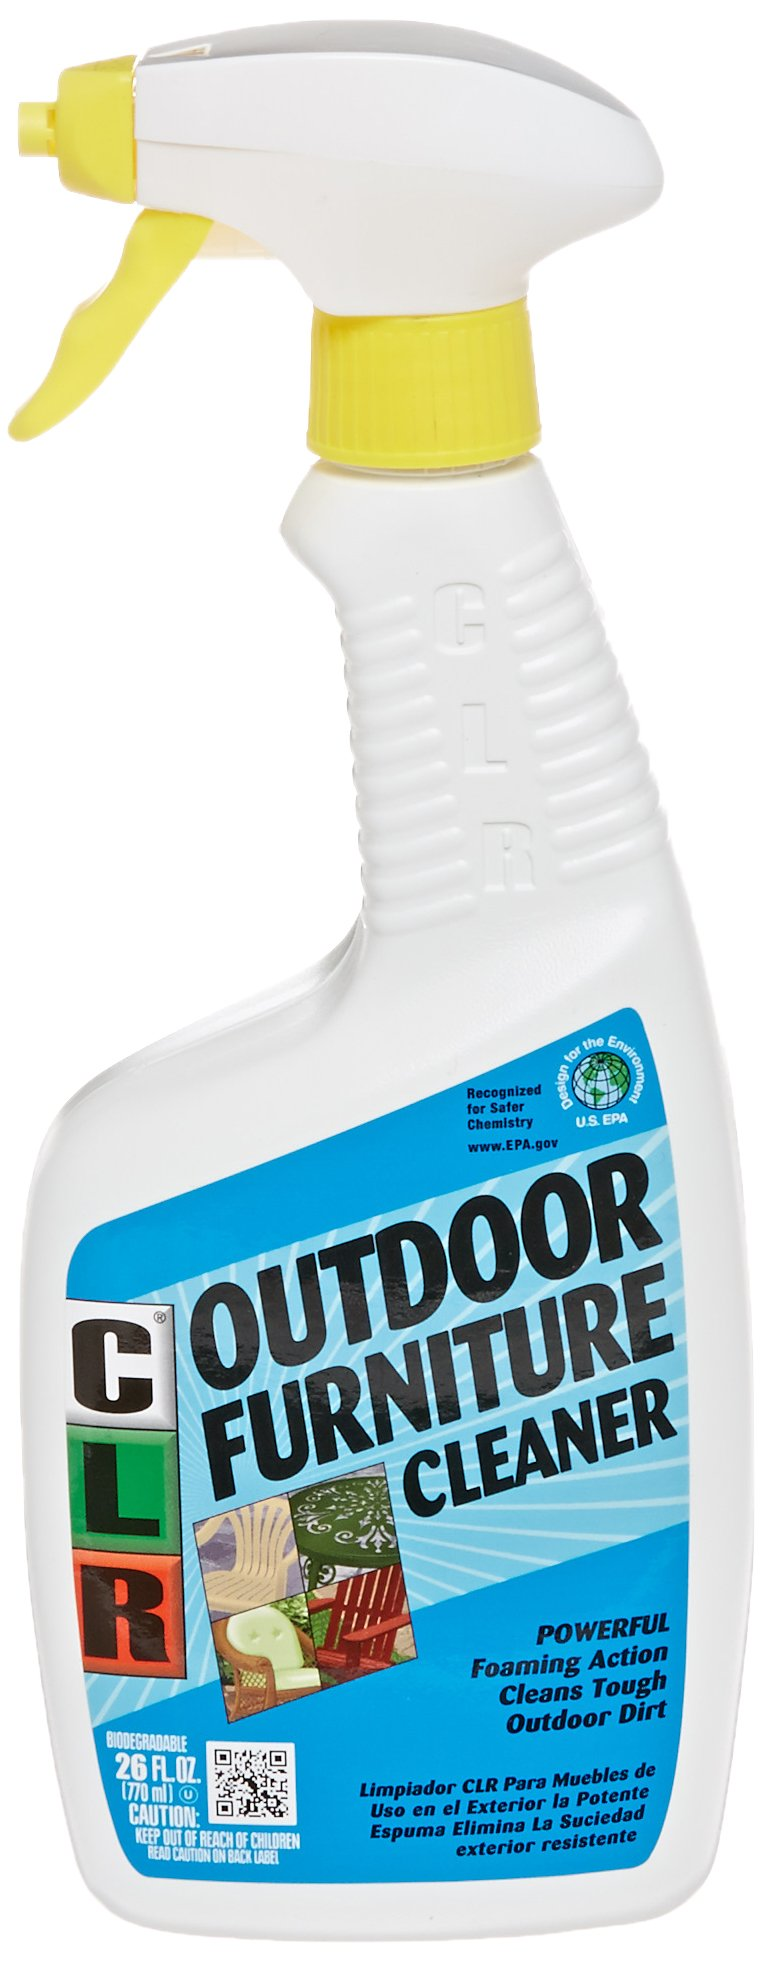 CLR PB-OF-26 Outdoor Furniture Cleaner, 26-Ounce by CLR (Image #2)